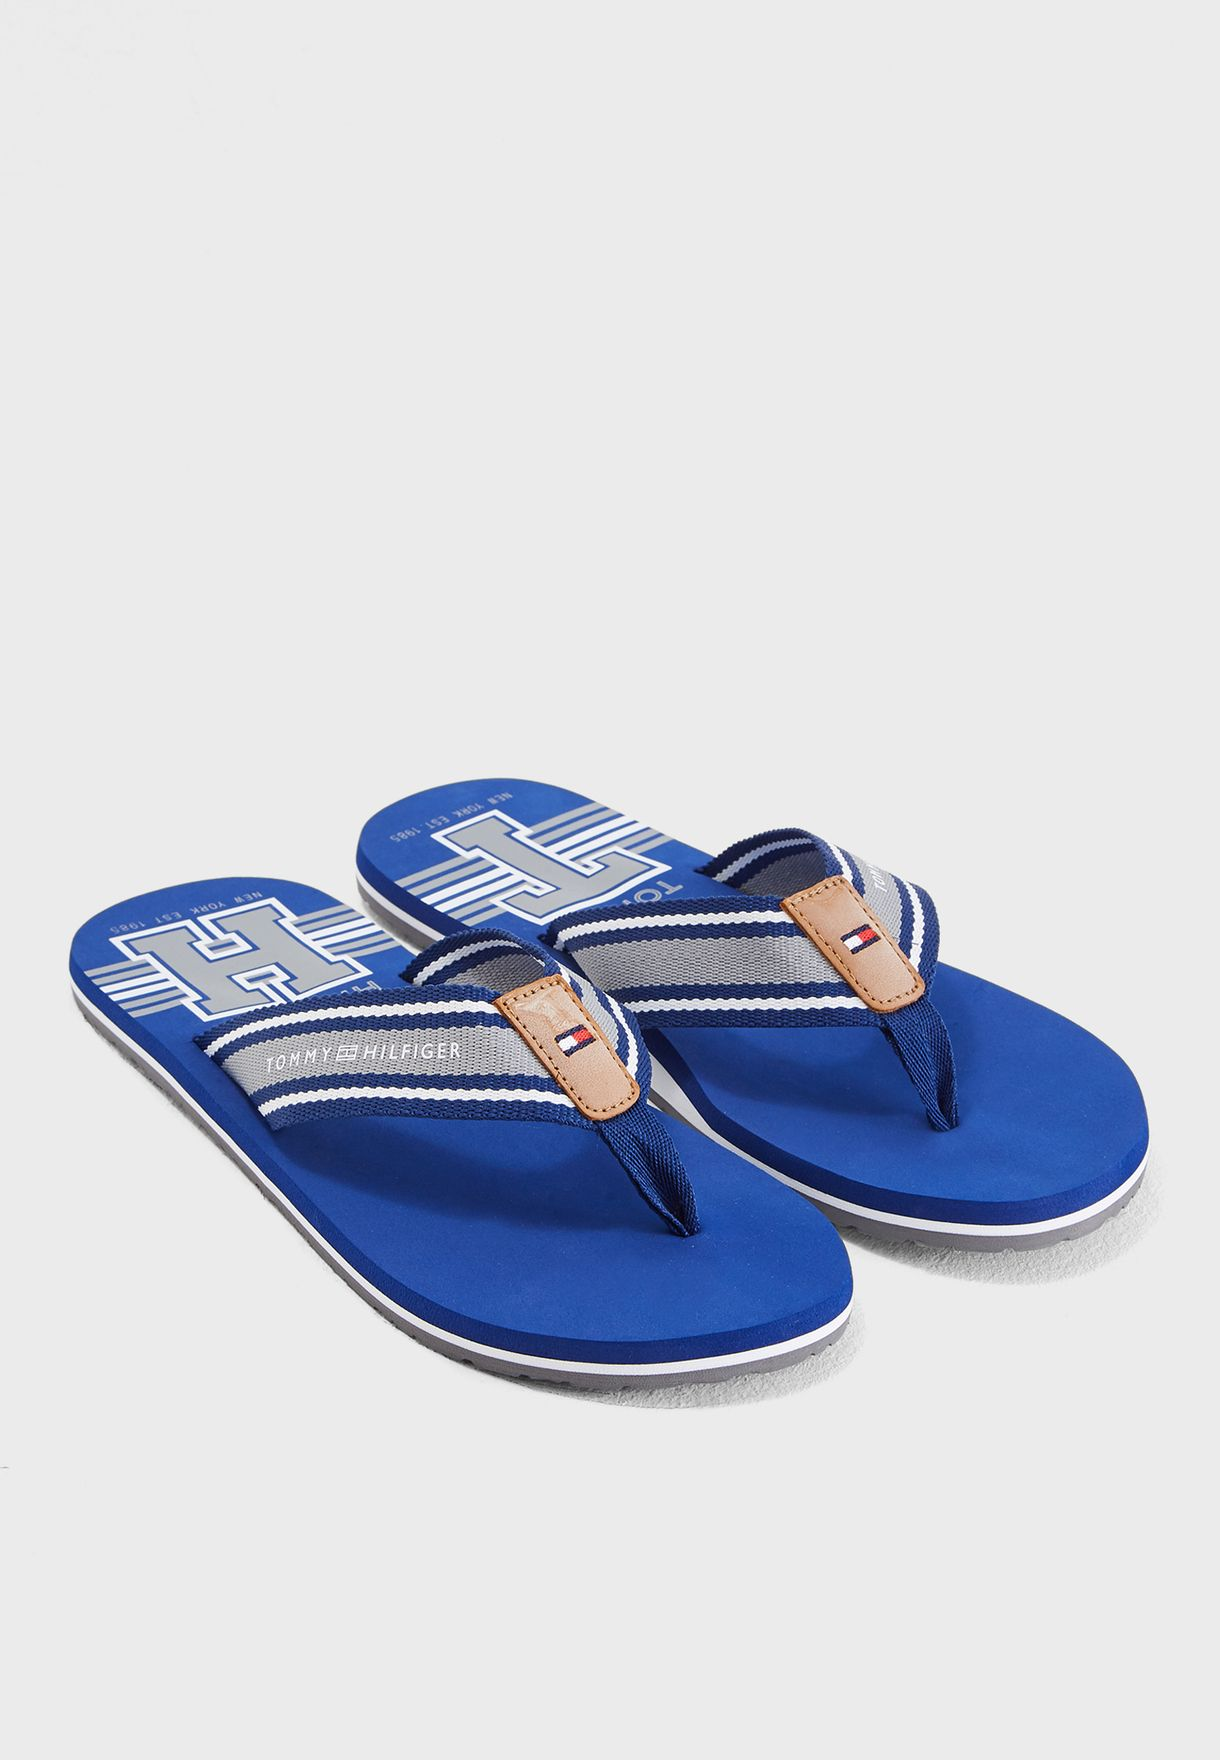 69b18b65537052 Shop Tommy Hilfiger multicolor Printed Beach Flip Flops FM0FM01799-408 for  Men in Qatar - TO279SH07KKY